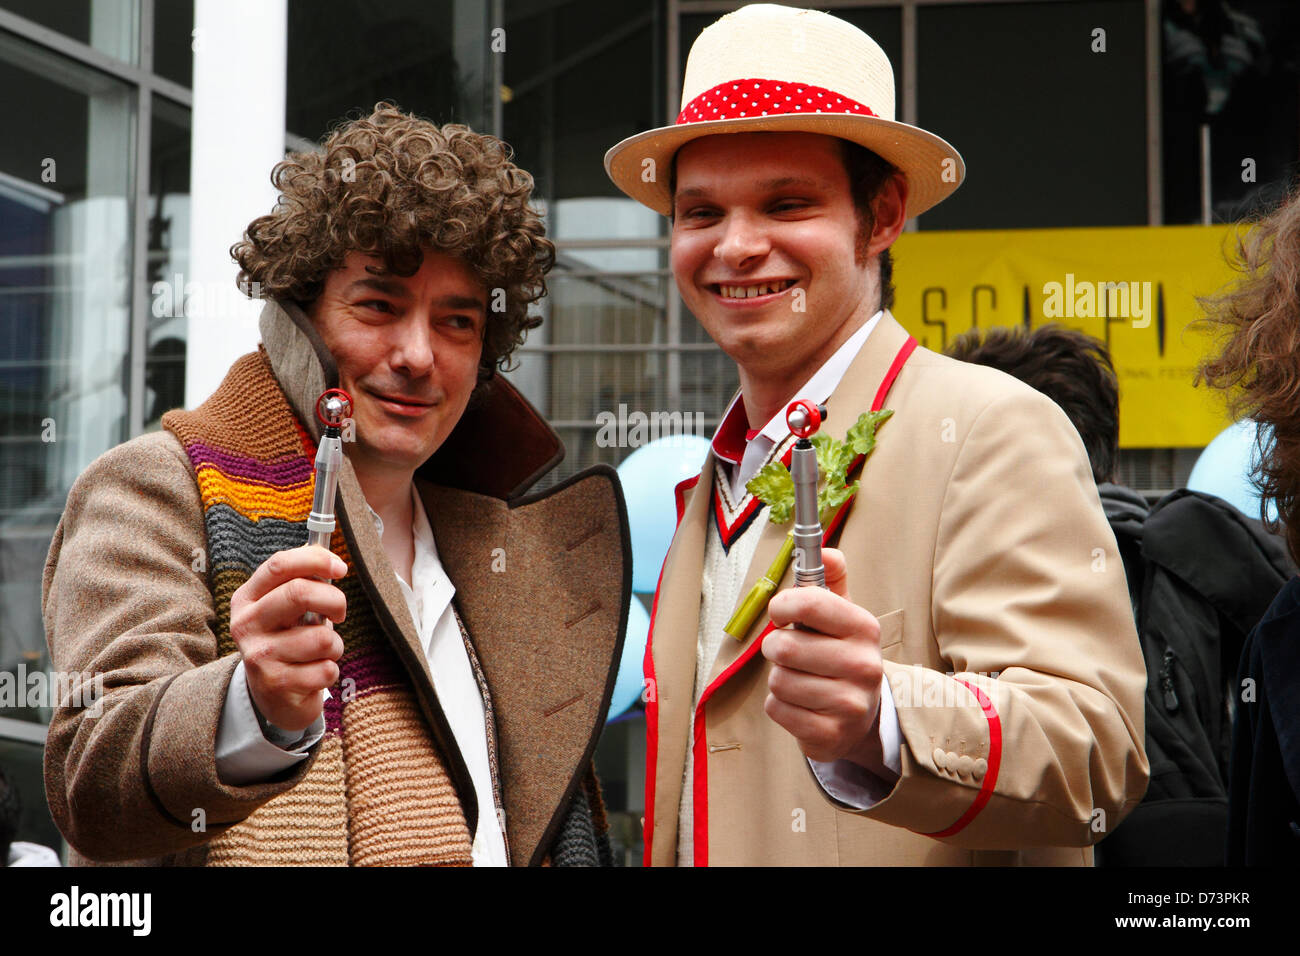 Two men dressed as Dr Who characters take part in the 12th Sci-Fi-London costume parade, Stratford, London, UK. - Stock Image